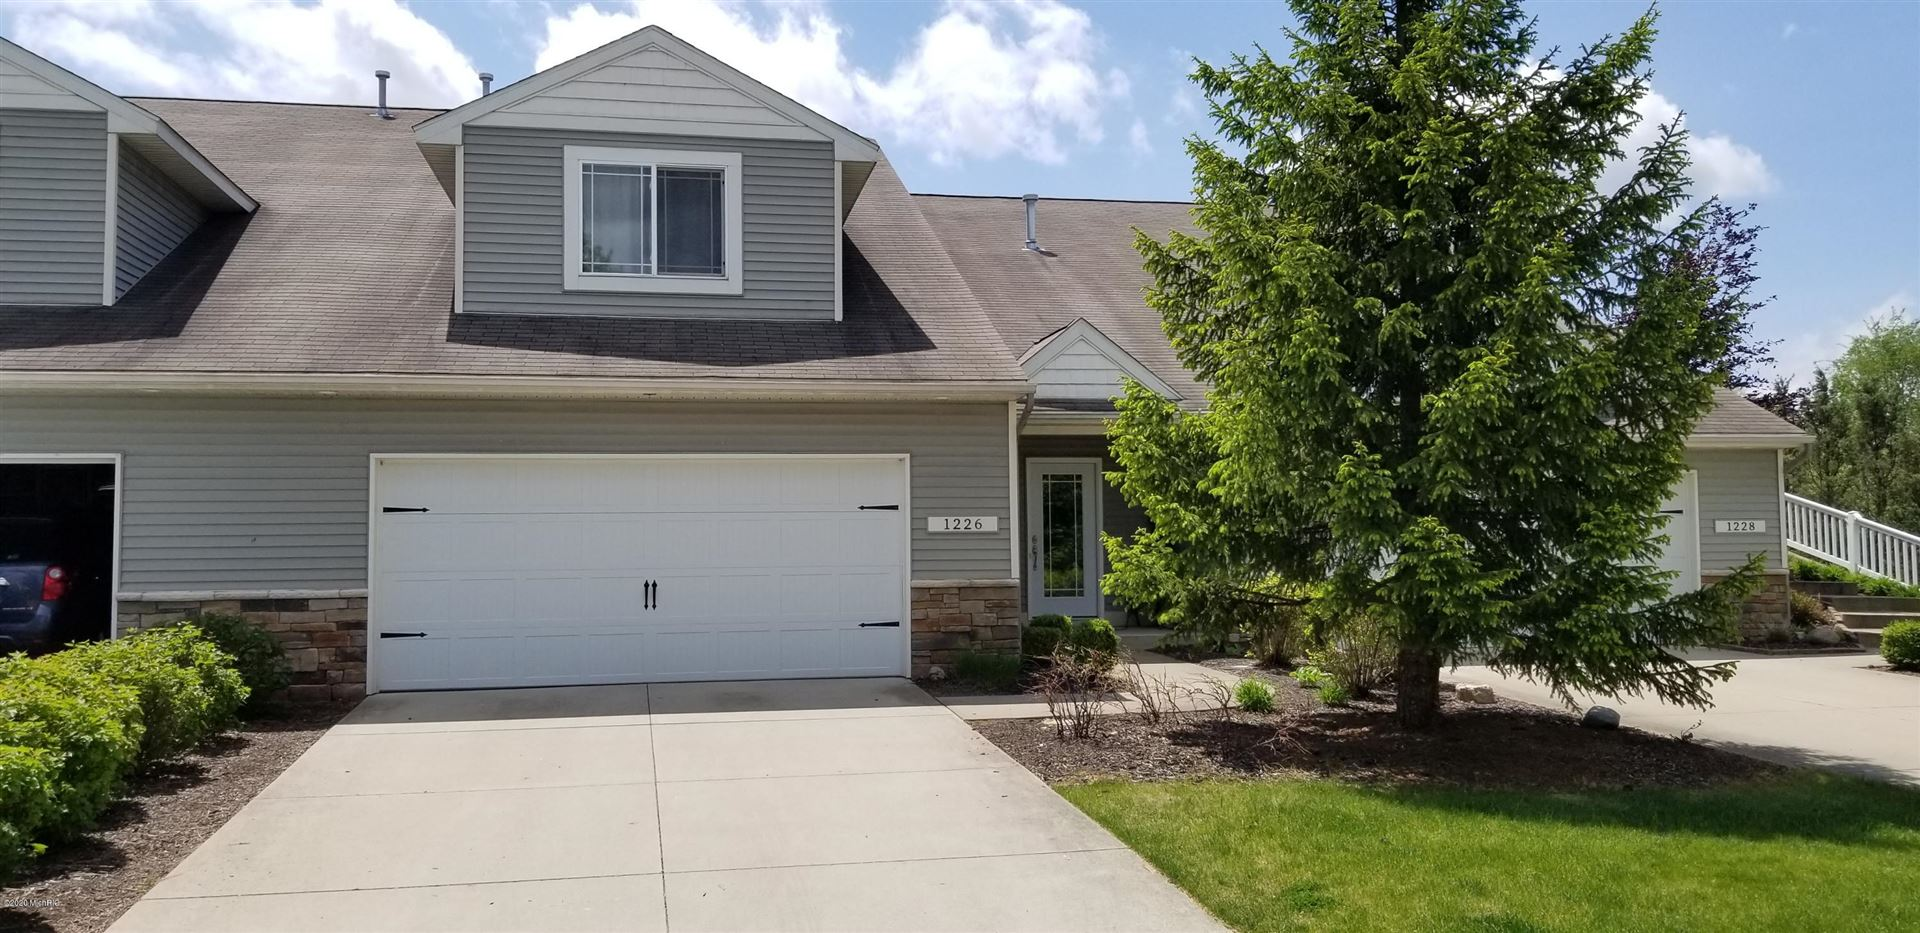 1226 Coopers Pass SW, Byron Center, MI 49315 - MLS#: 20026289